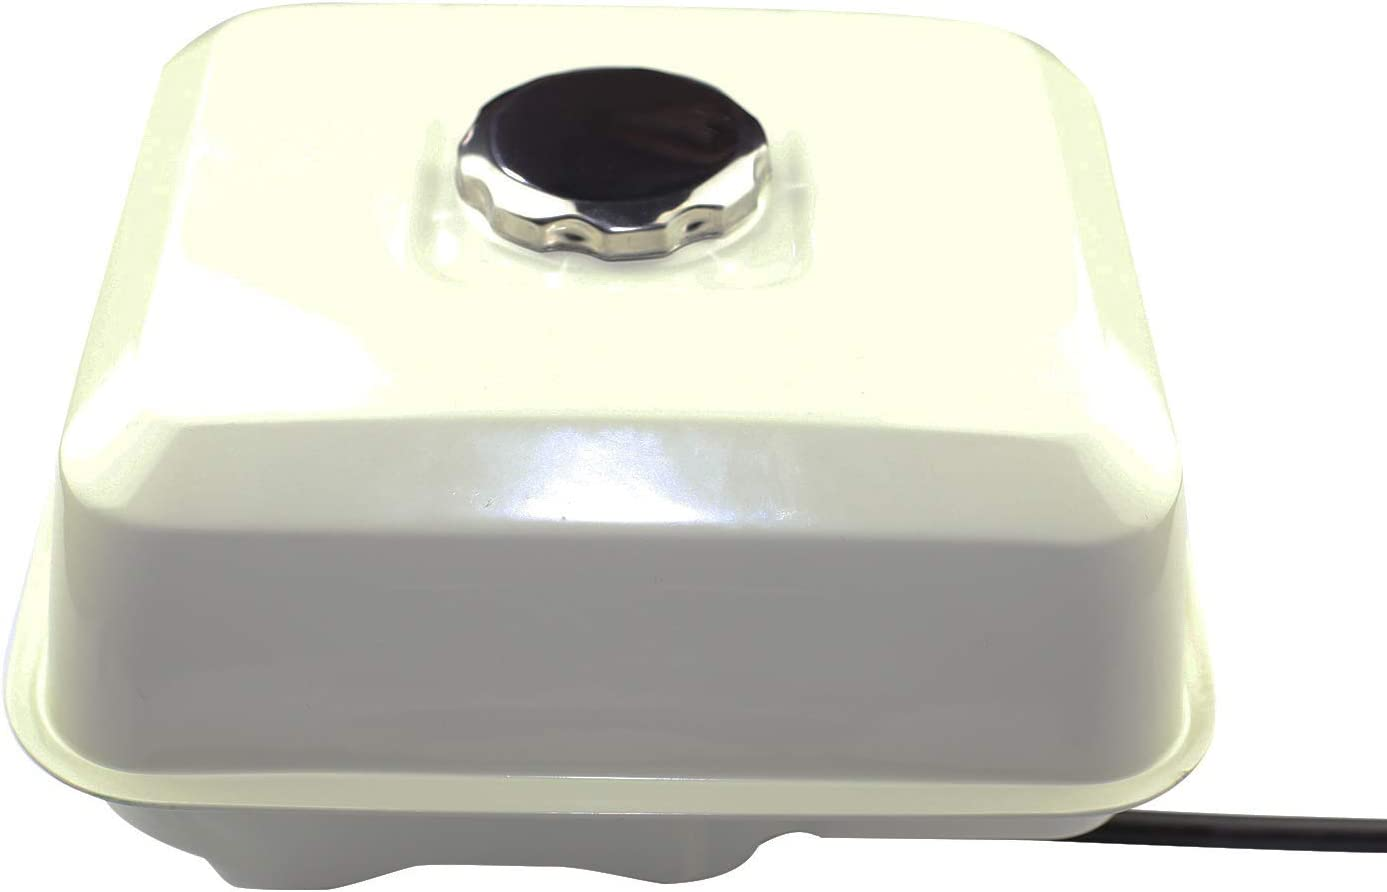 AUFANE Fuel Tank Replaces Honda GX340 #OE GX390 Max 68% OFF OFFicial store 11HP 13HP Engine